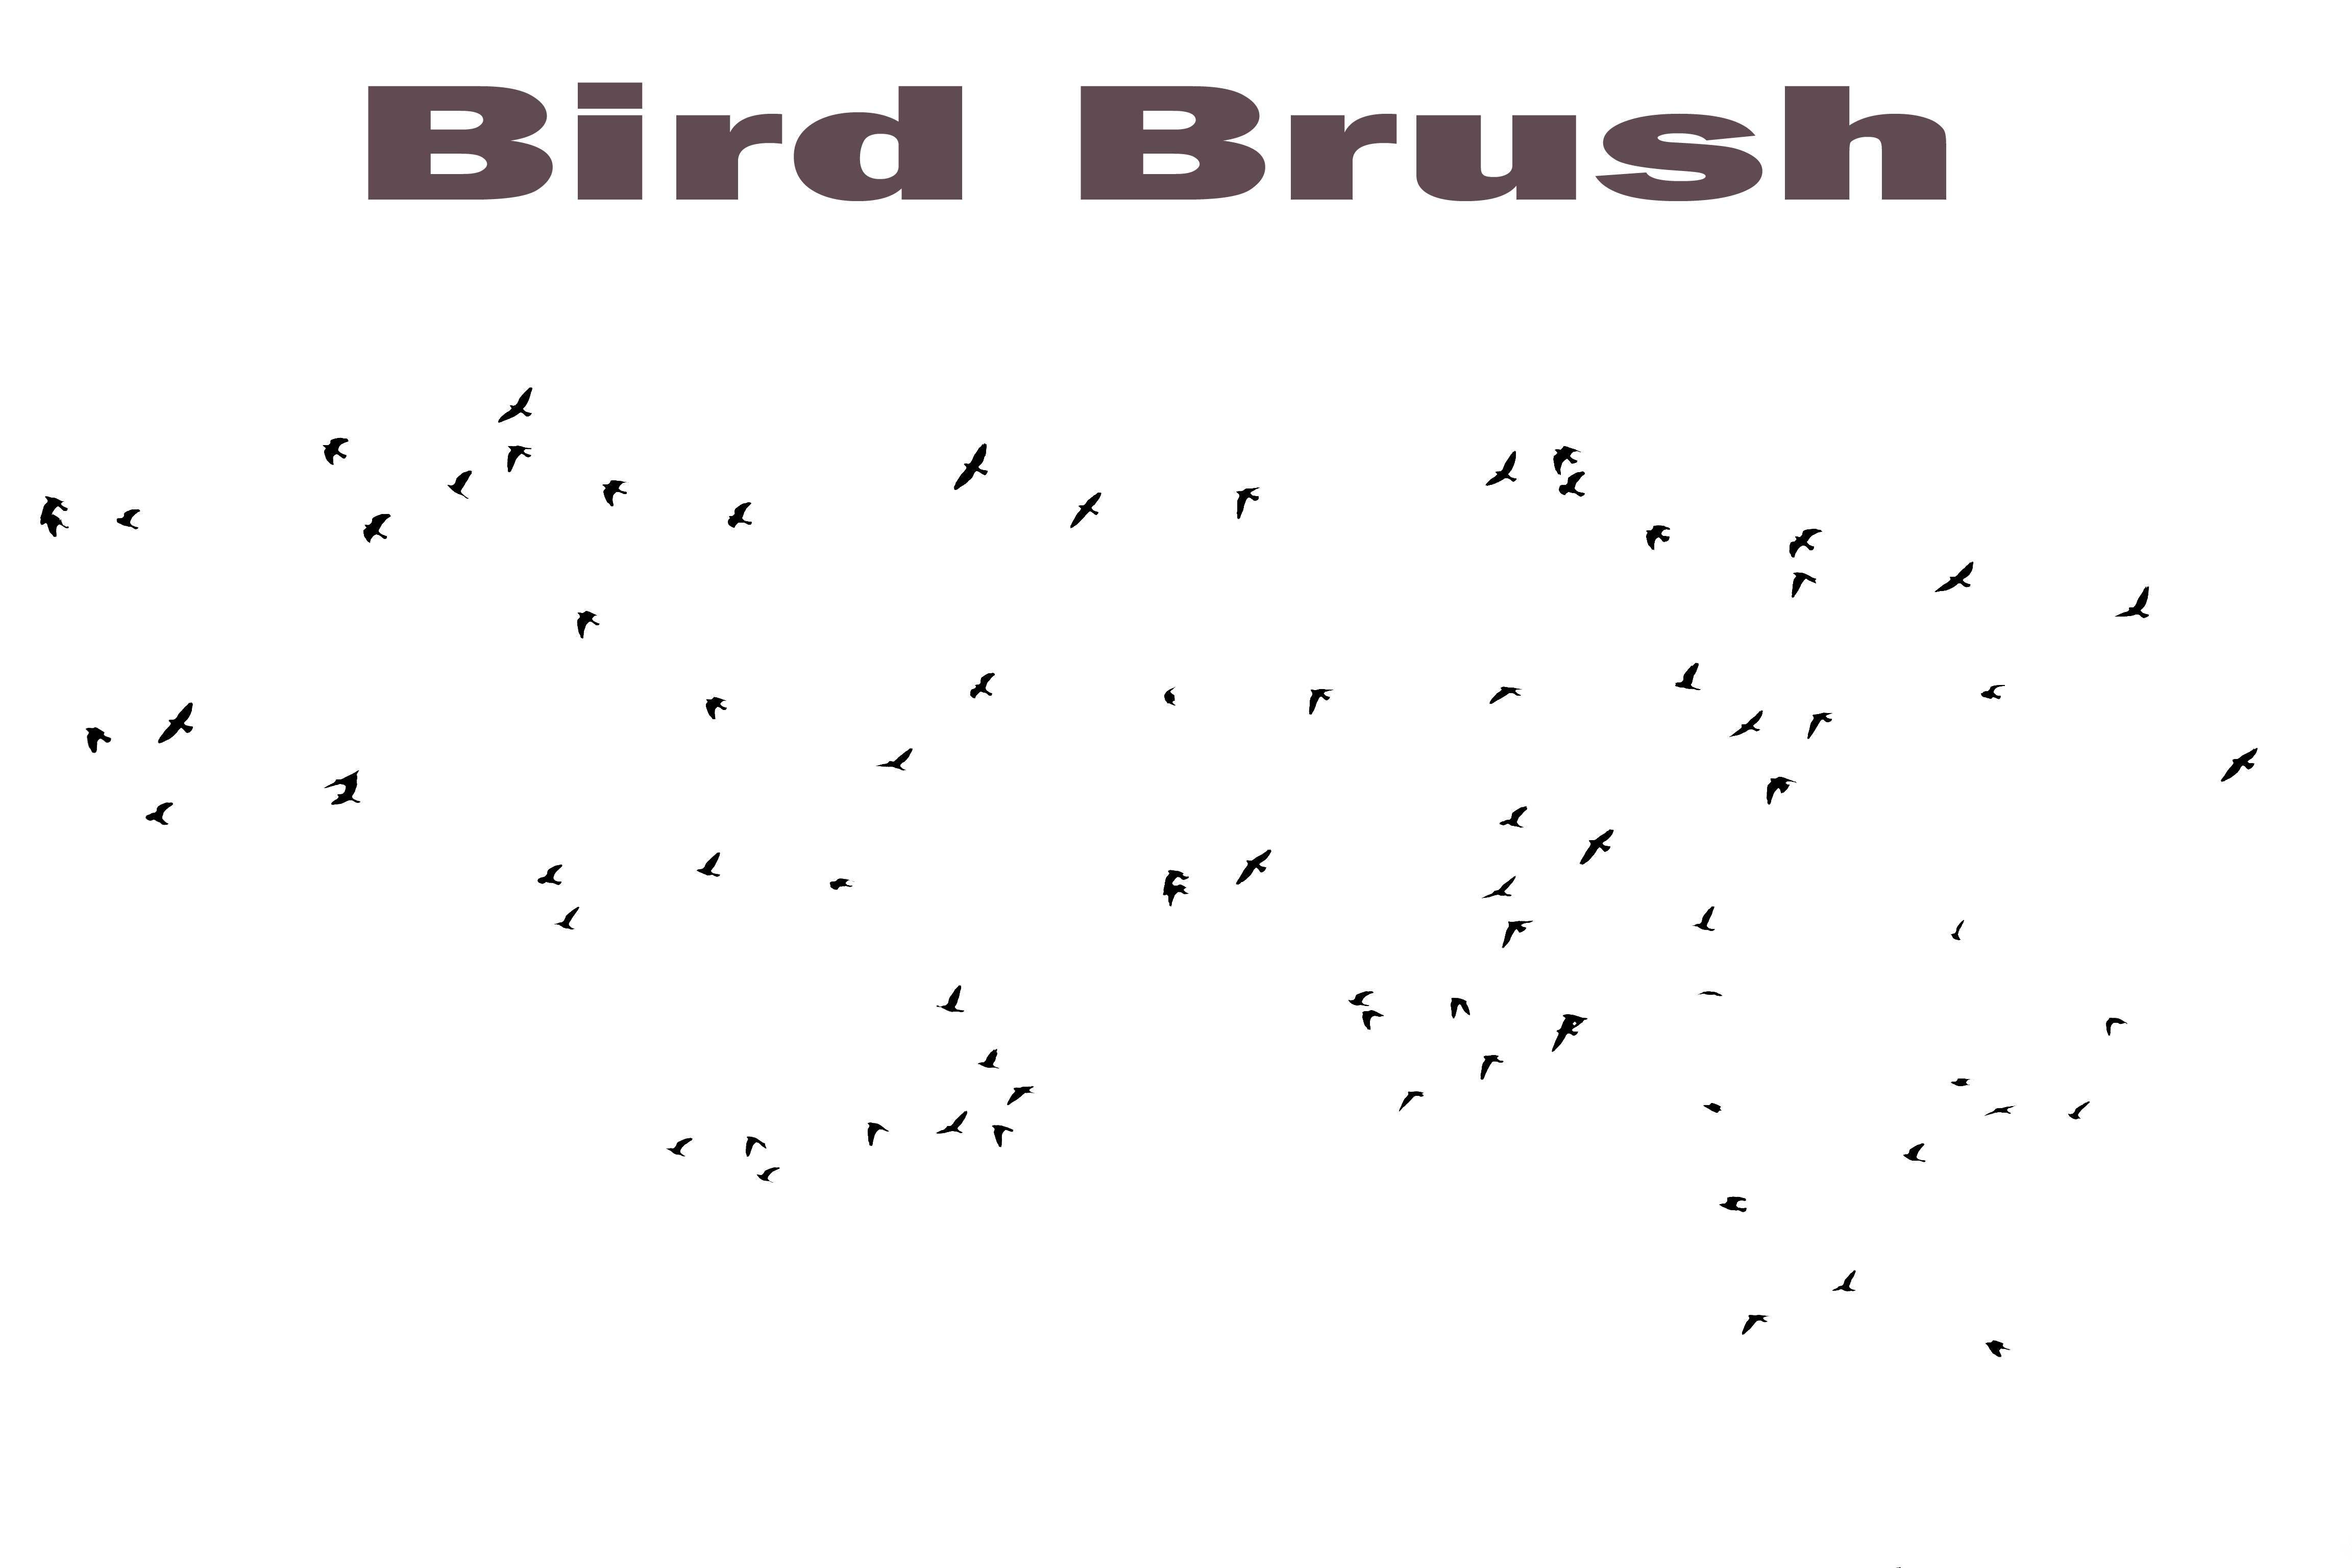 Bird Brush By Frankandcarystock On Deviantart